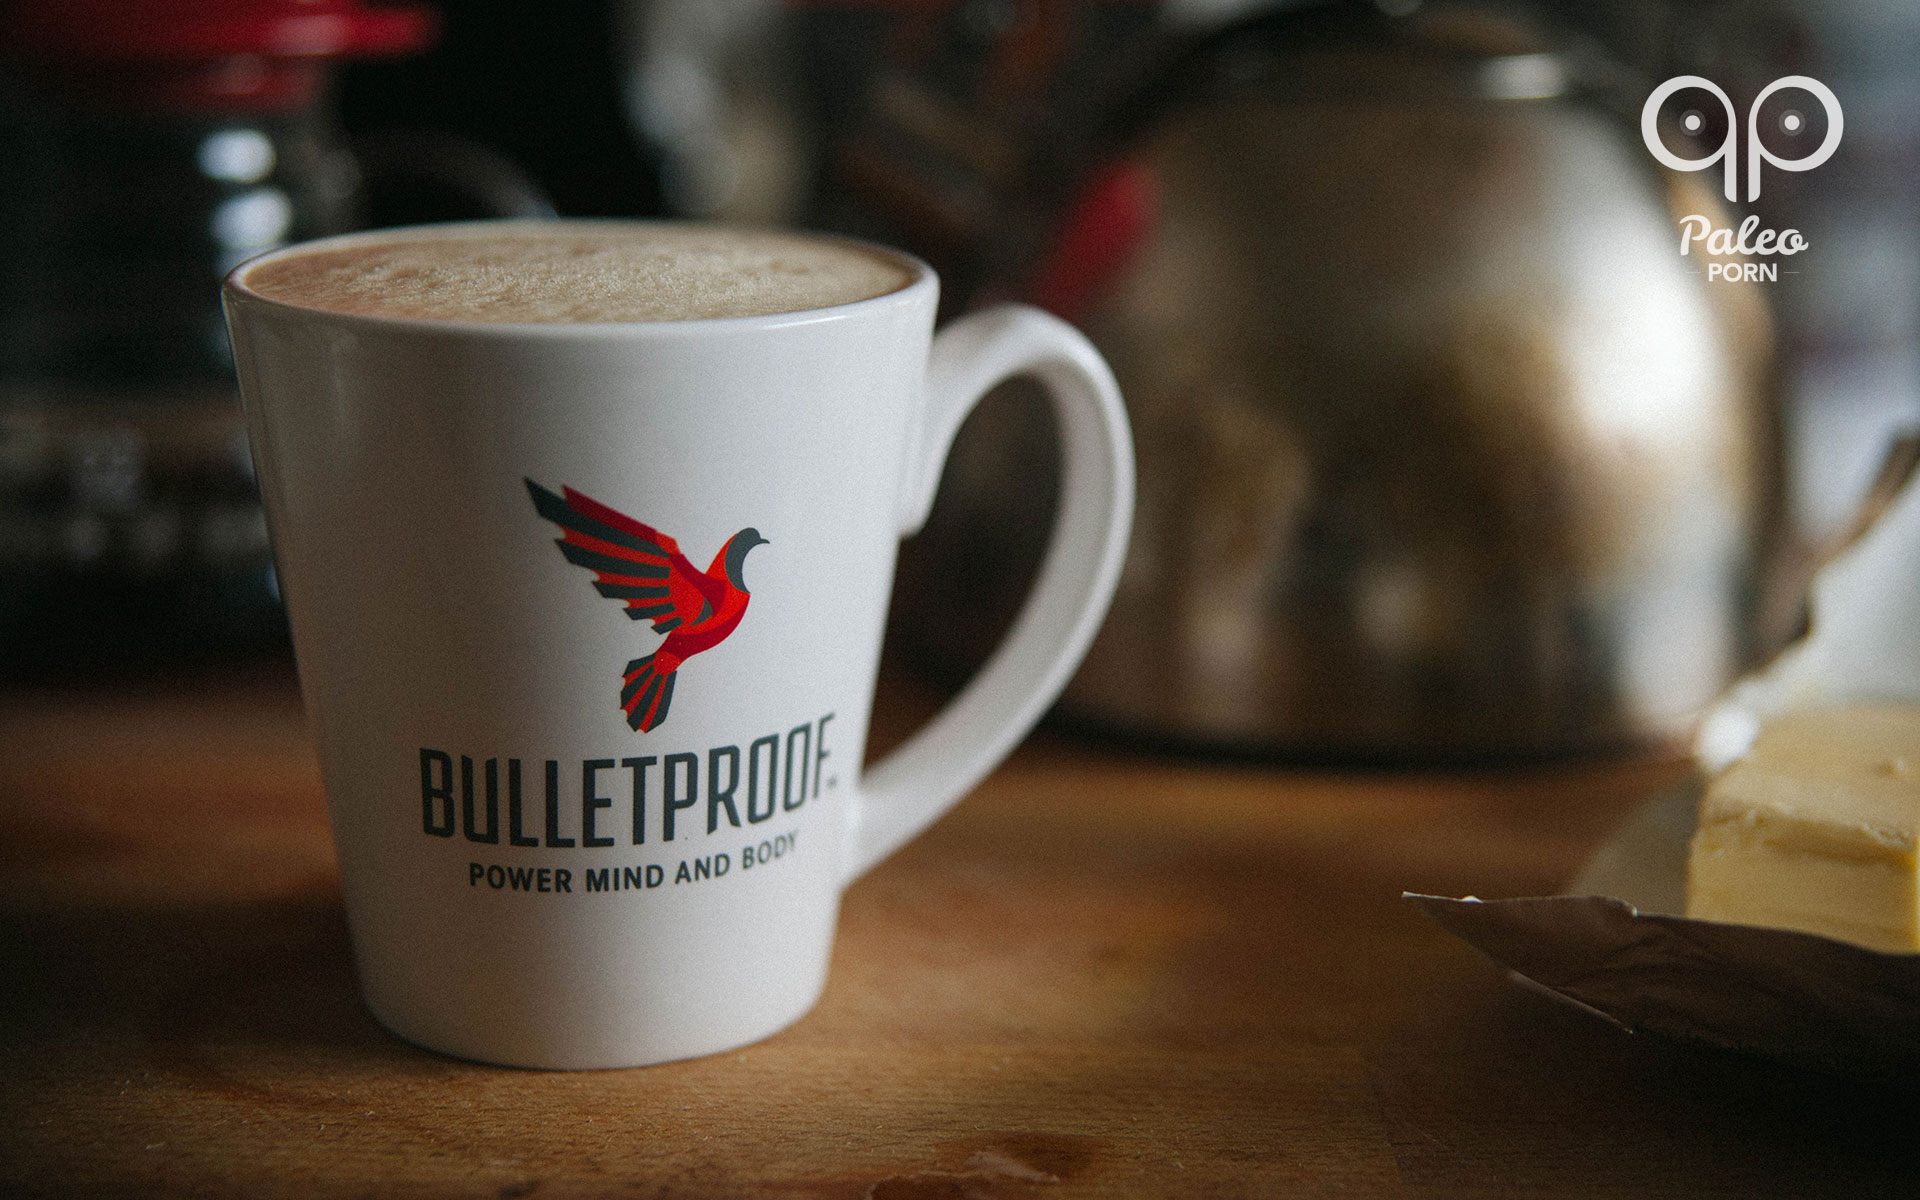 How to make butter coffee paleo porn steamy paleo recipes bulletproof coffee in chicago malvernweather Choice Image